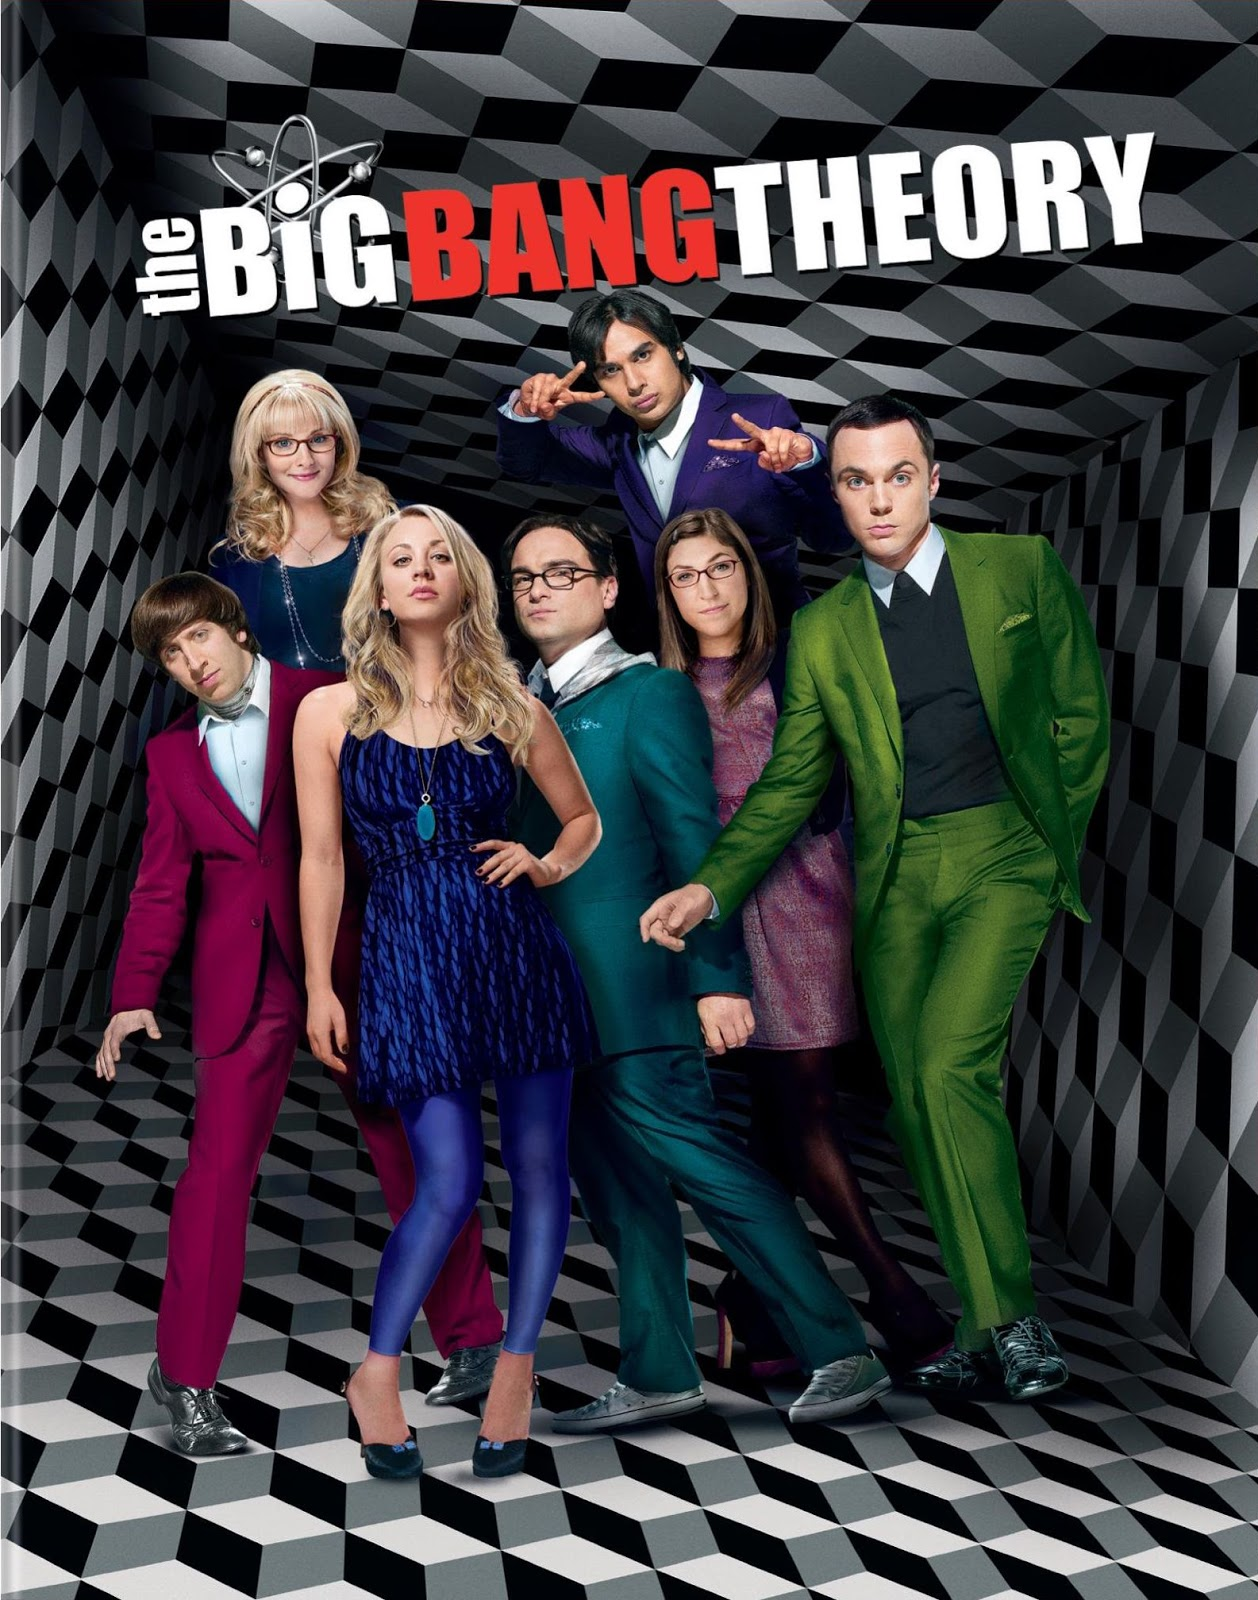 The big bang theory 5x19 online dating